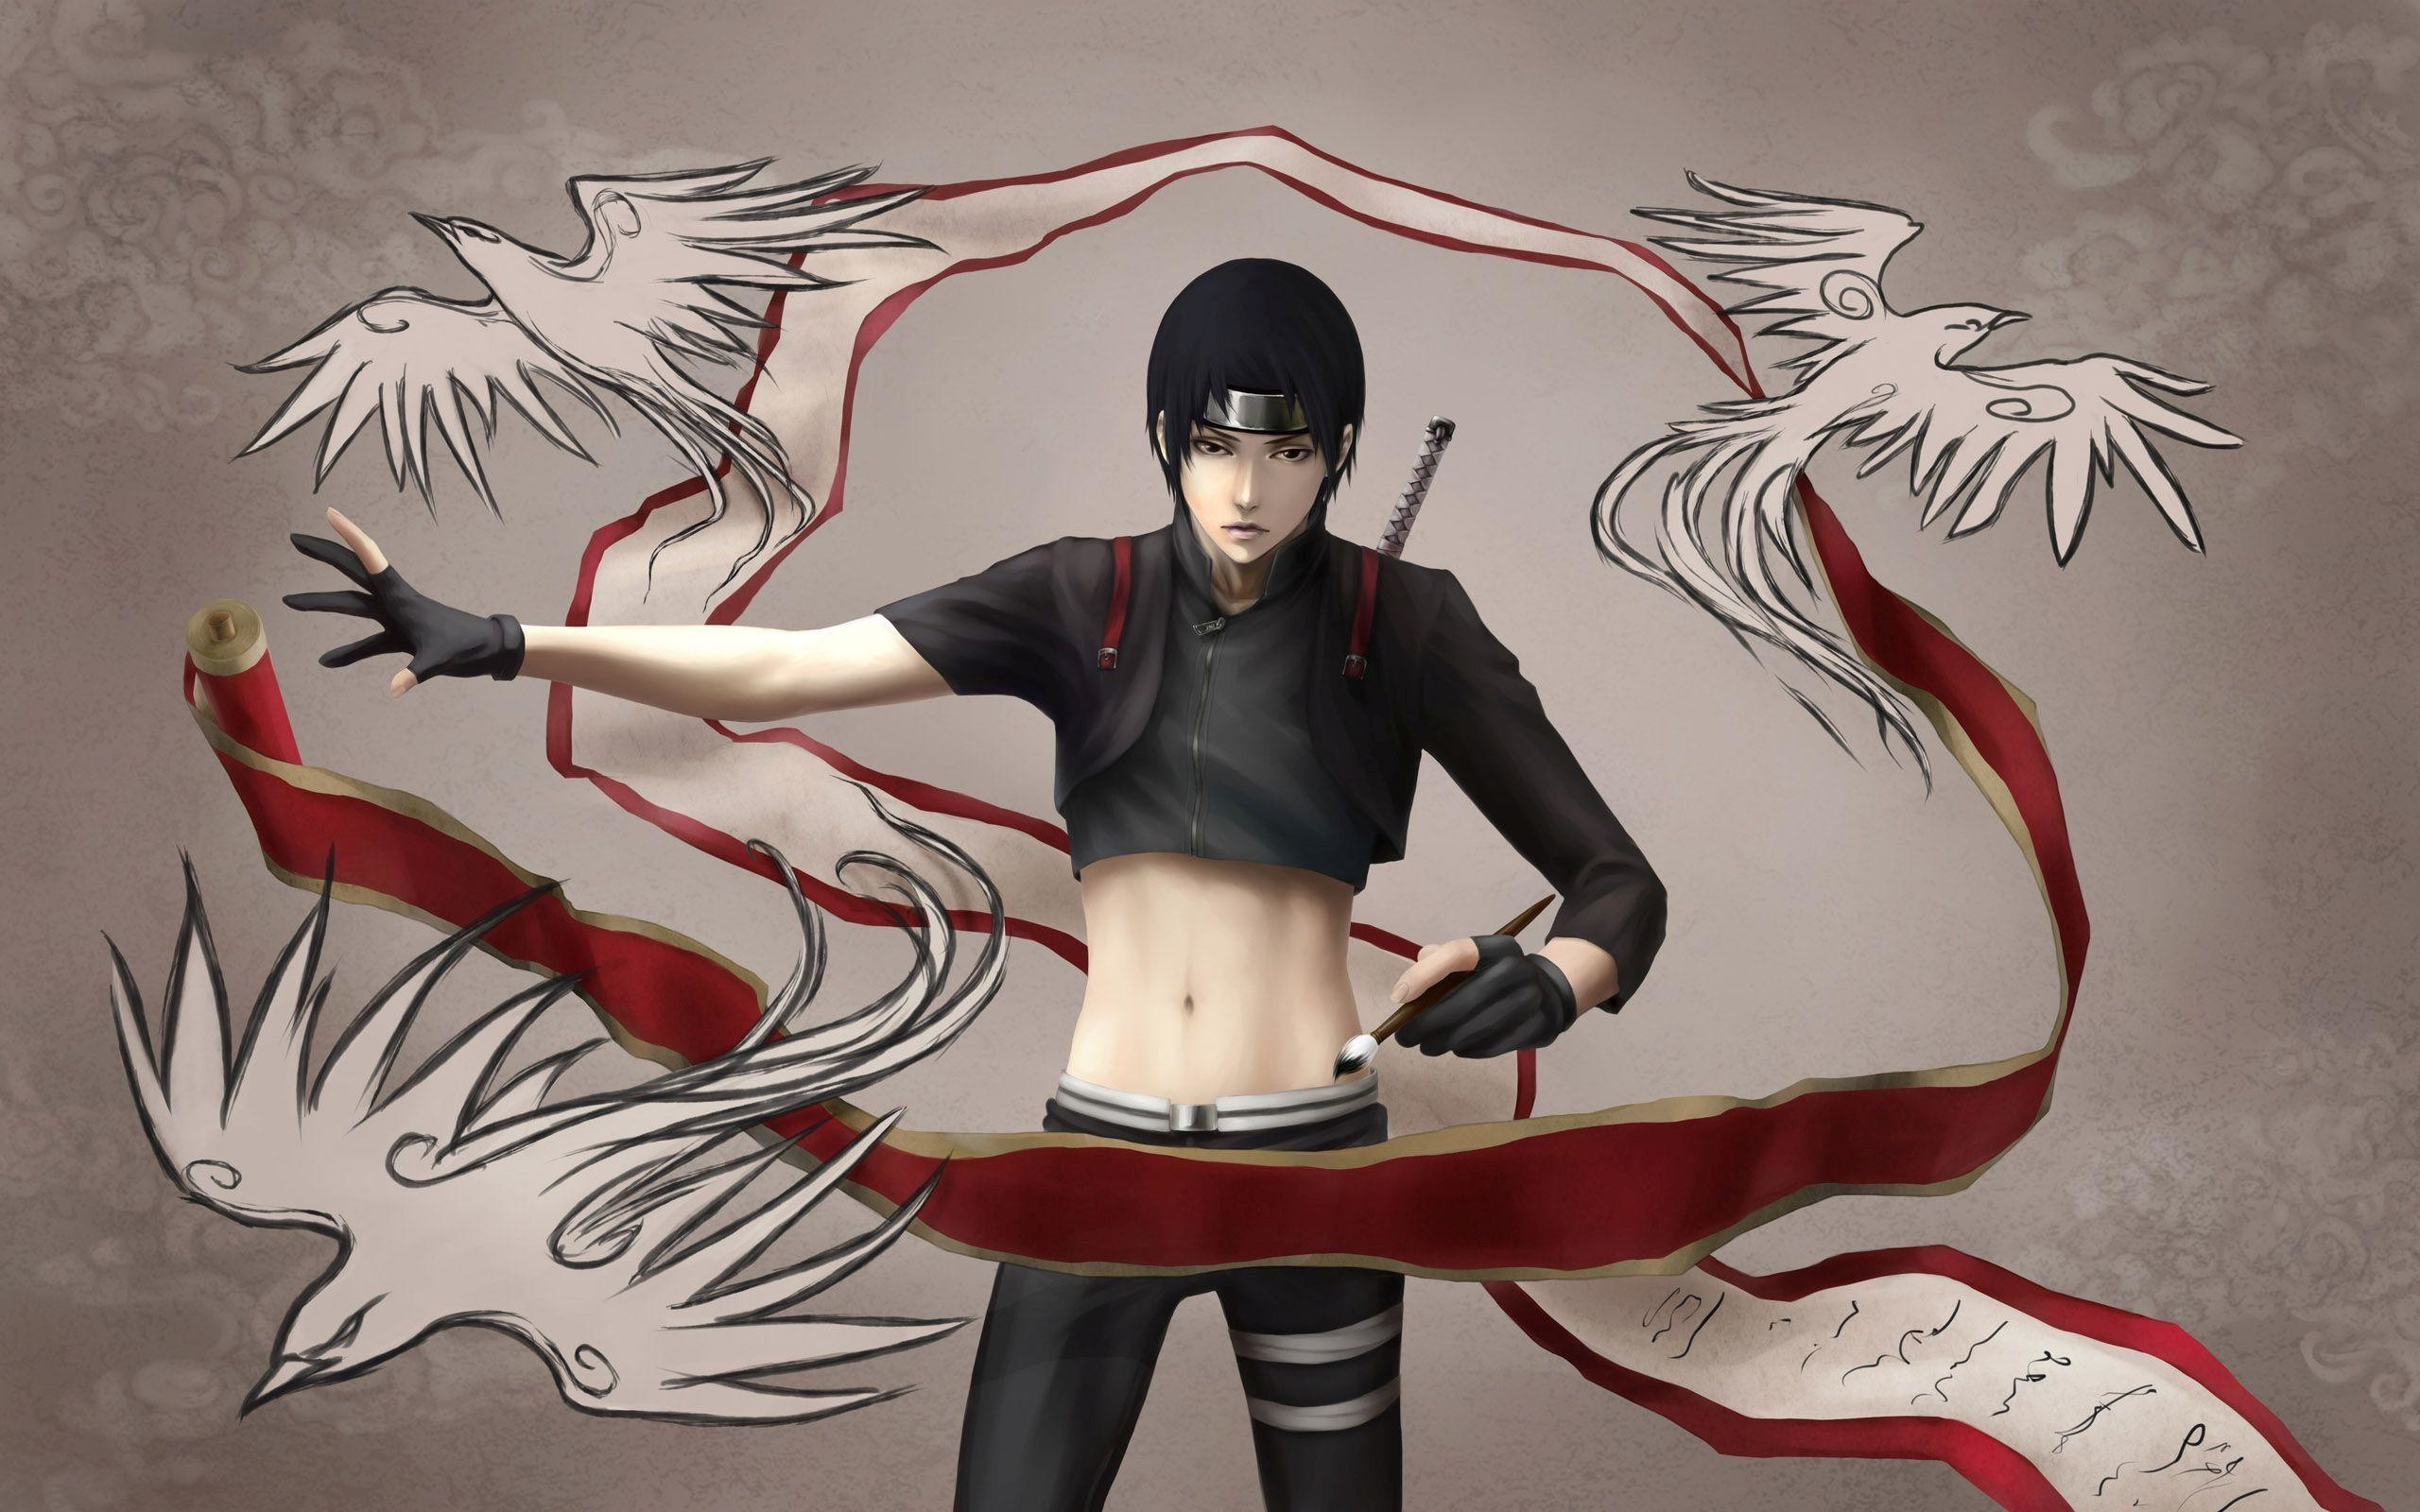 Naruto sai wallpaper 2560x1600 sai wallpapers full hd wallpaper search voltagebd Image collections